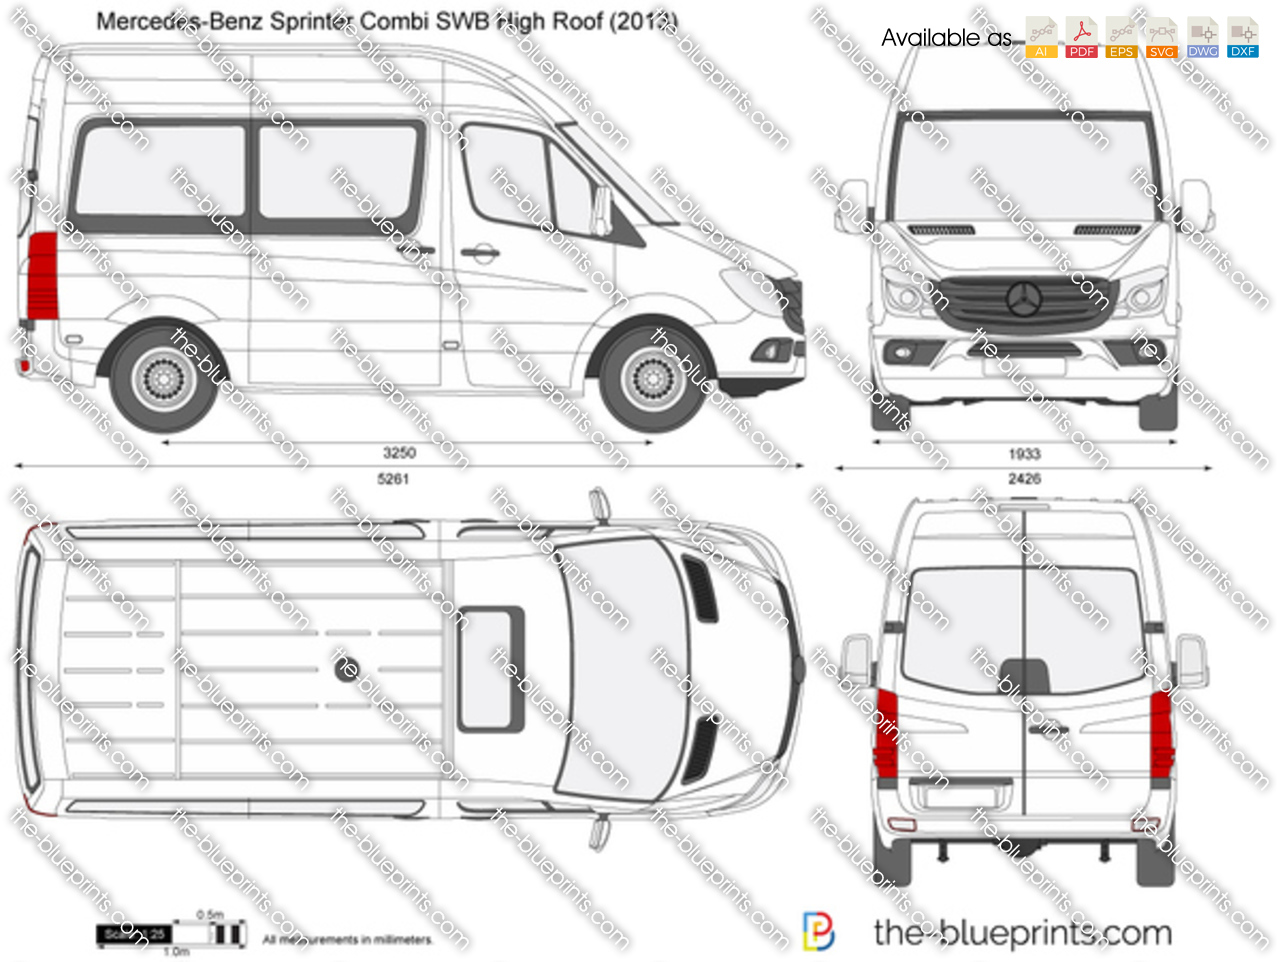 Mercedes Benz Sprinter Combi Swb High Roof Vector Drawing